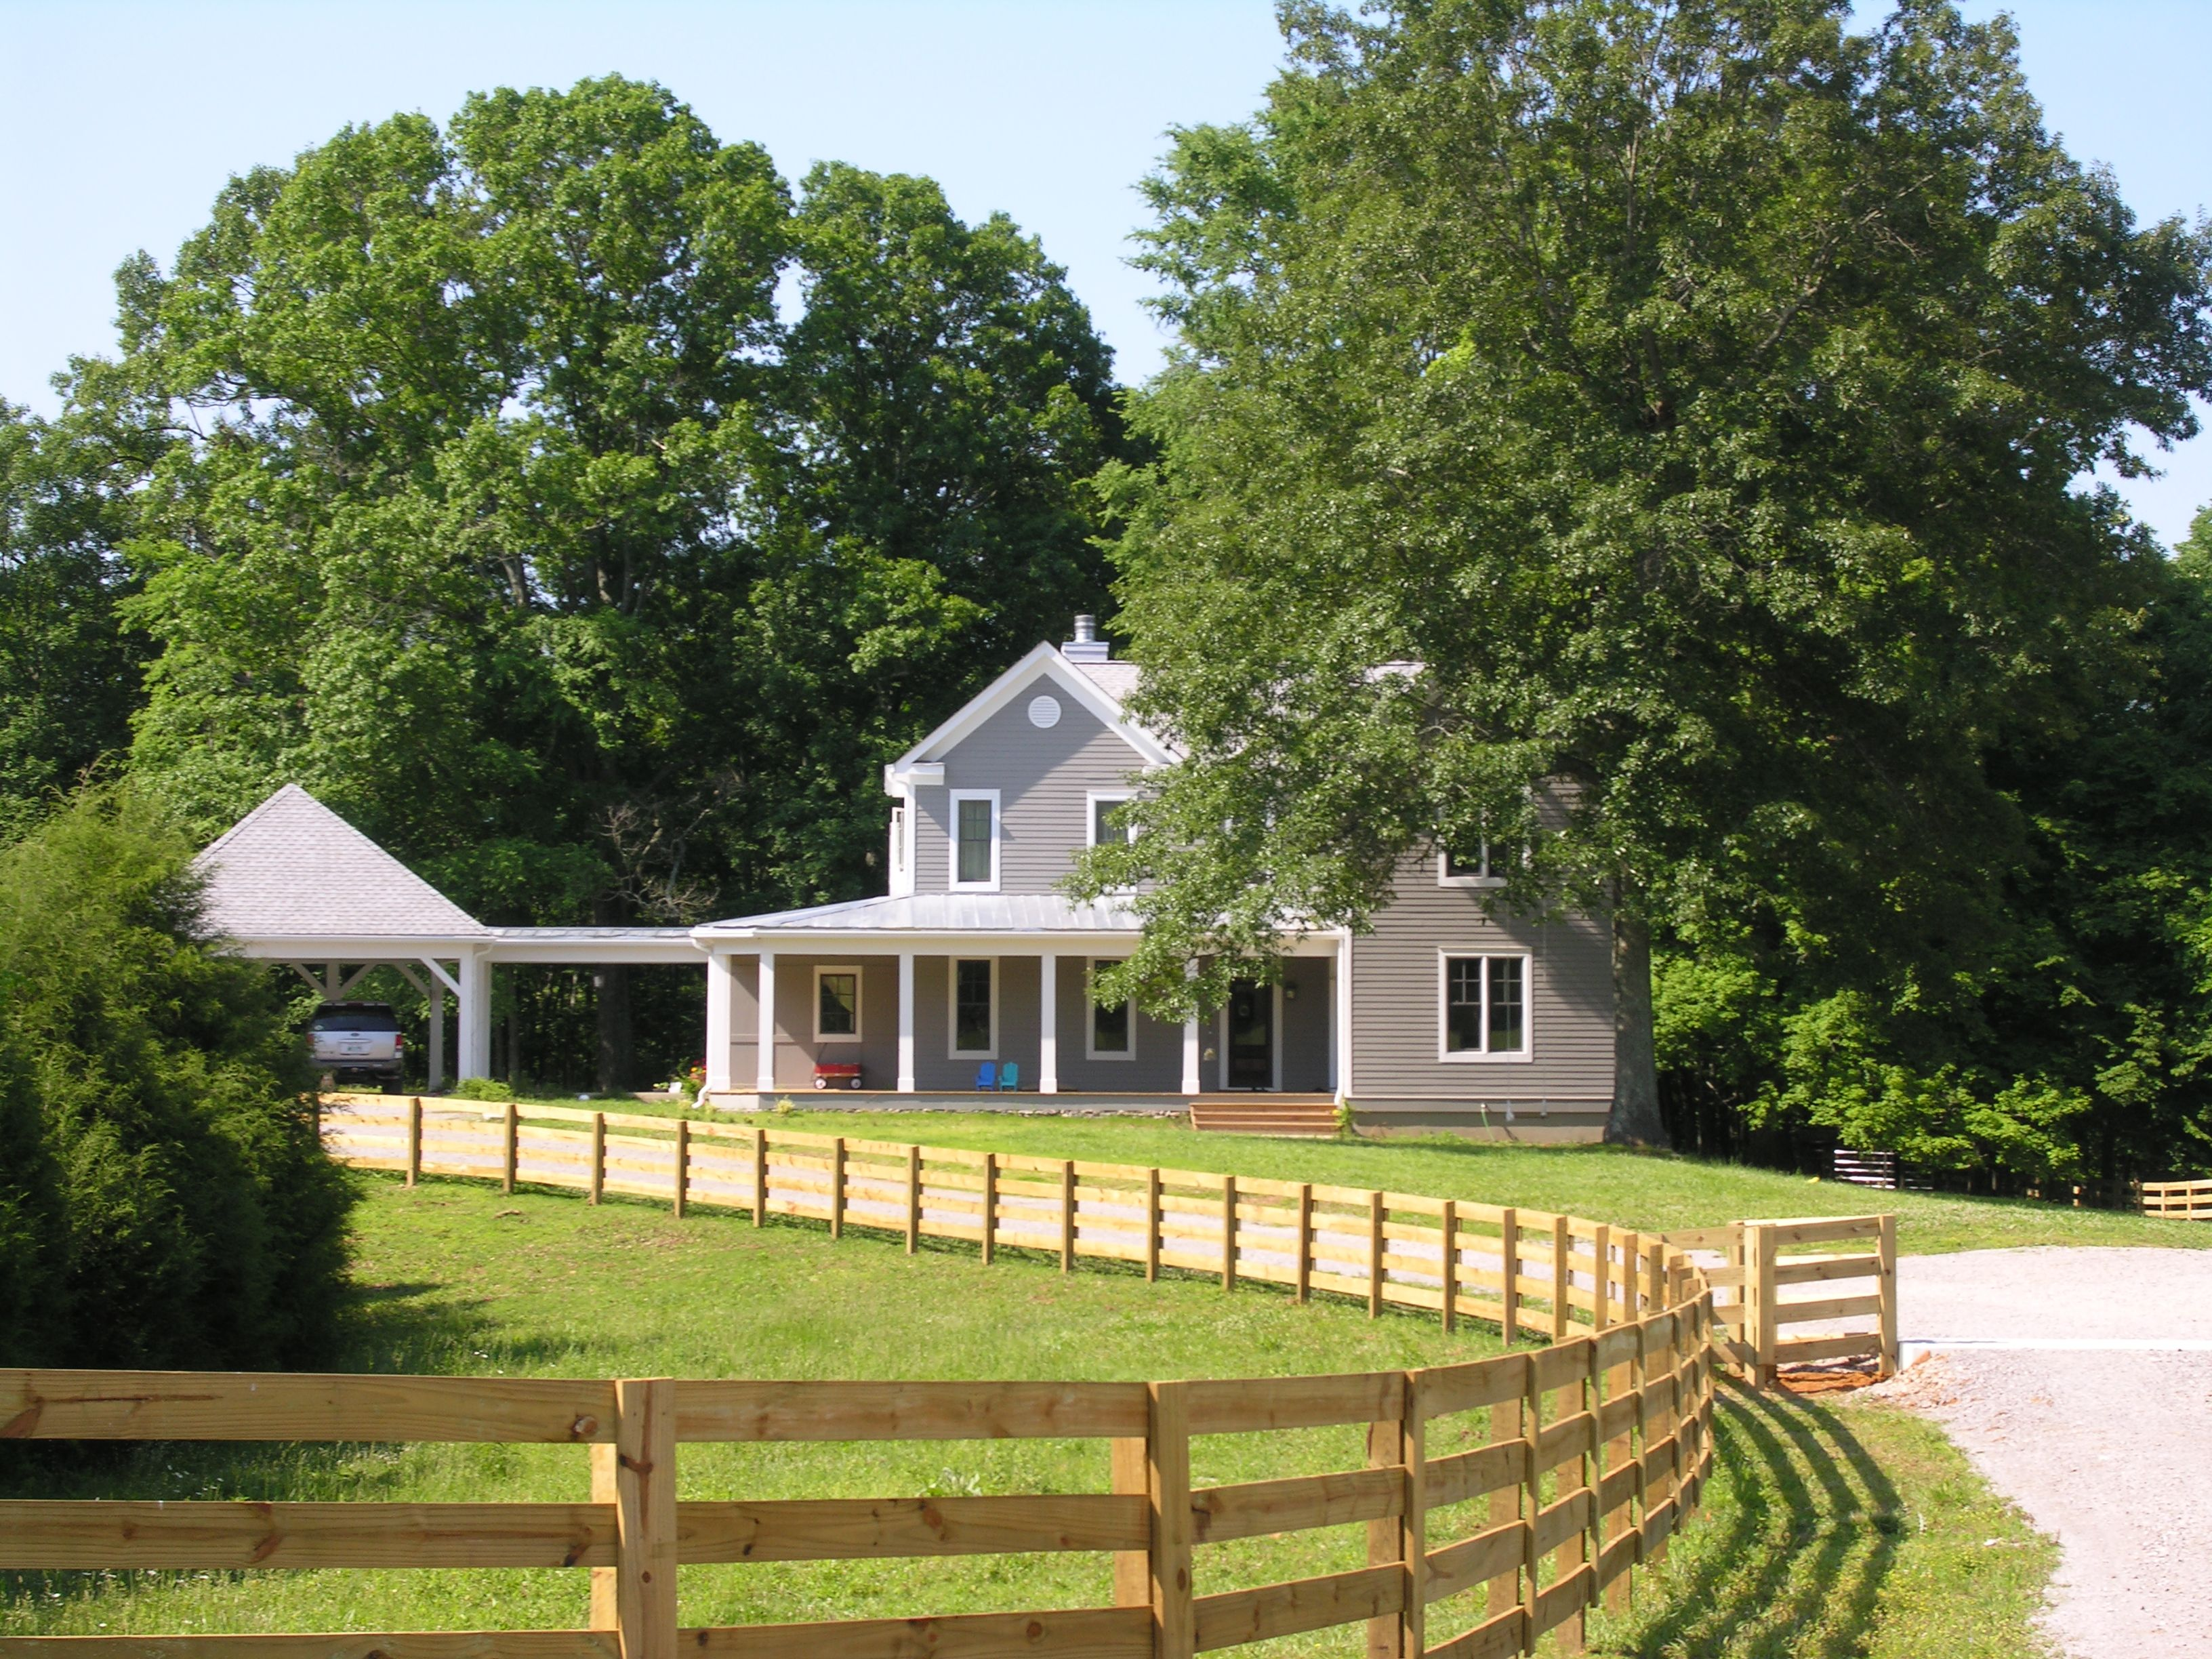 property for sale in williamson co tn